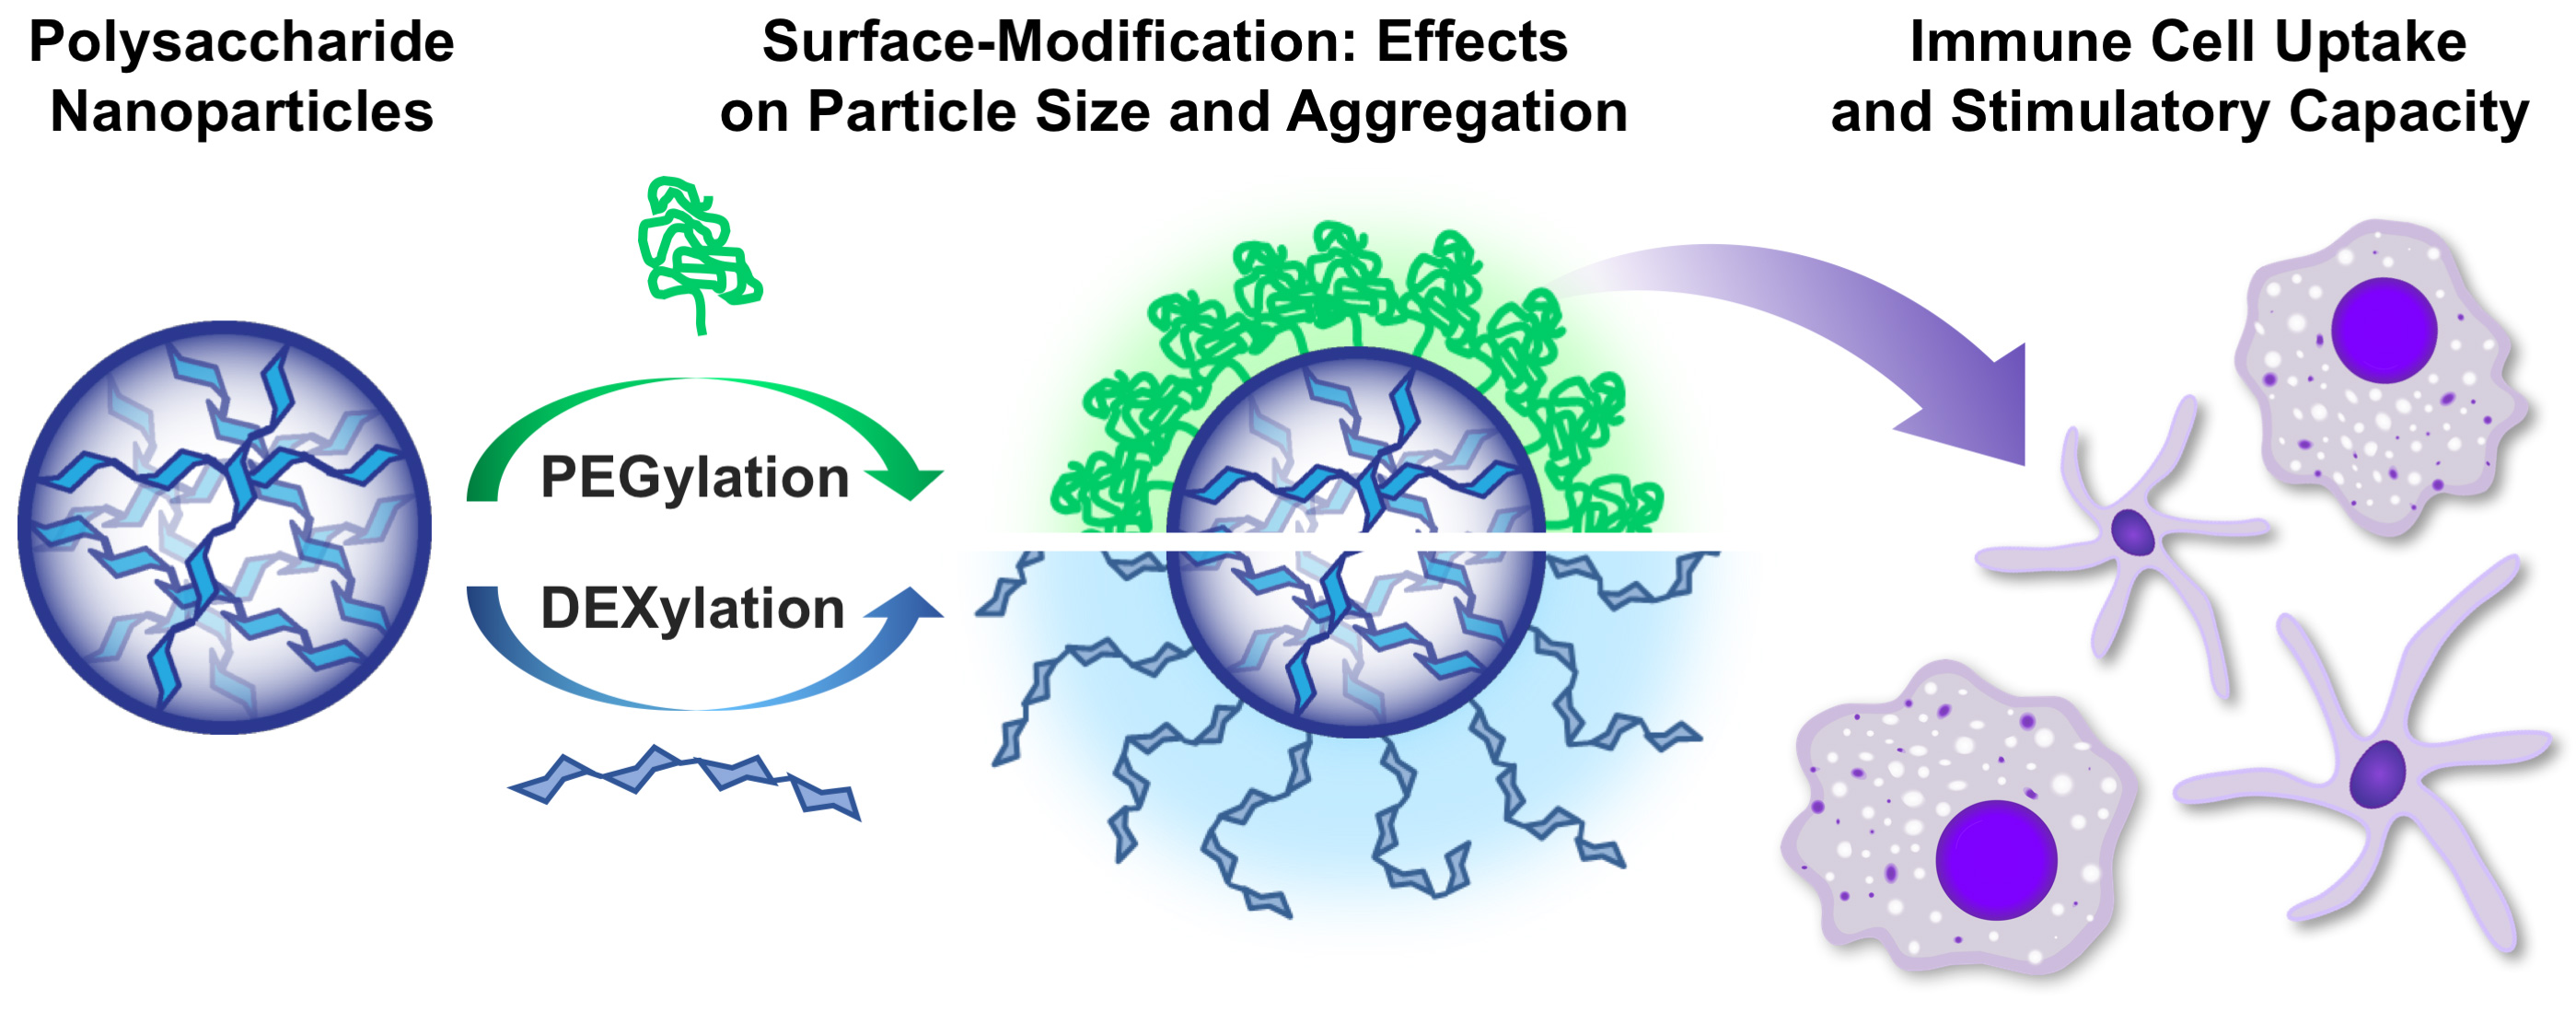 Surface Modification of Polysaccharide-Based Nanoparticles